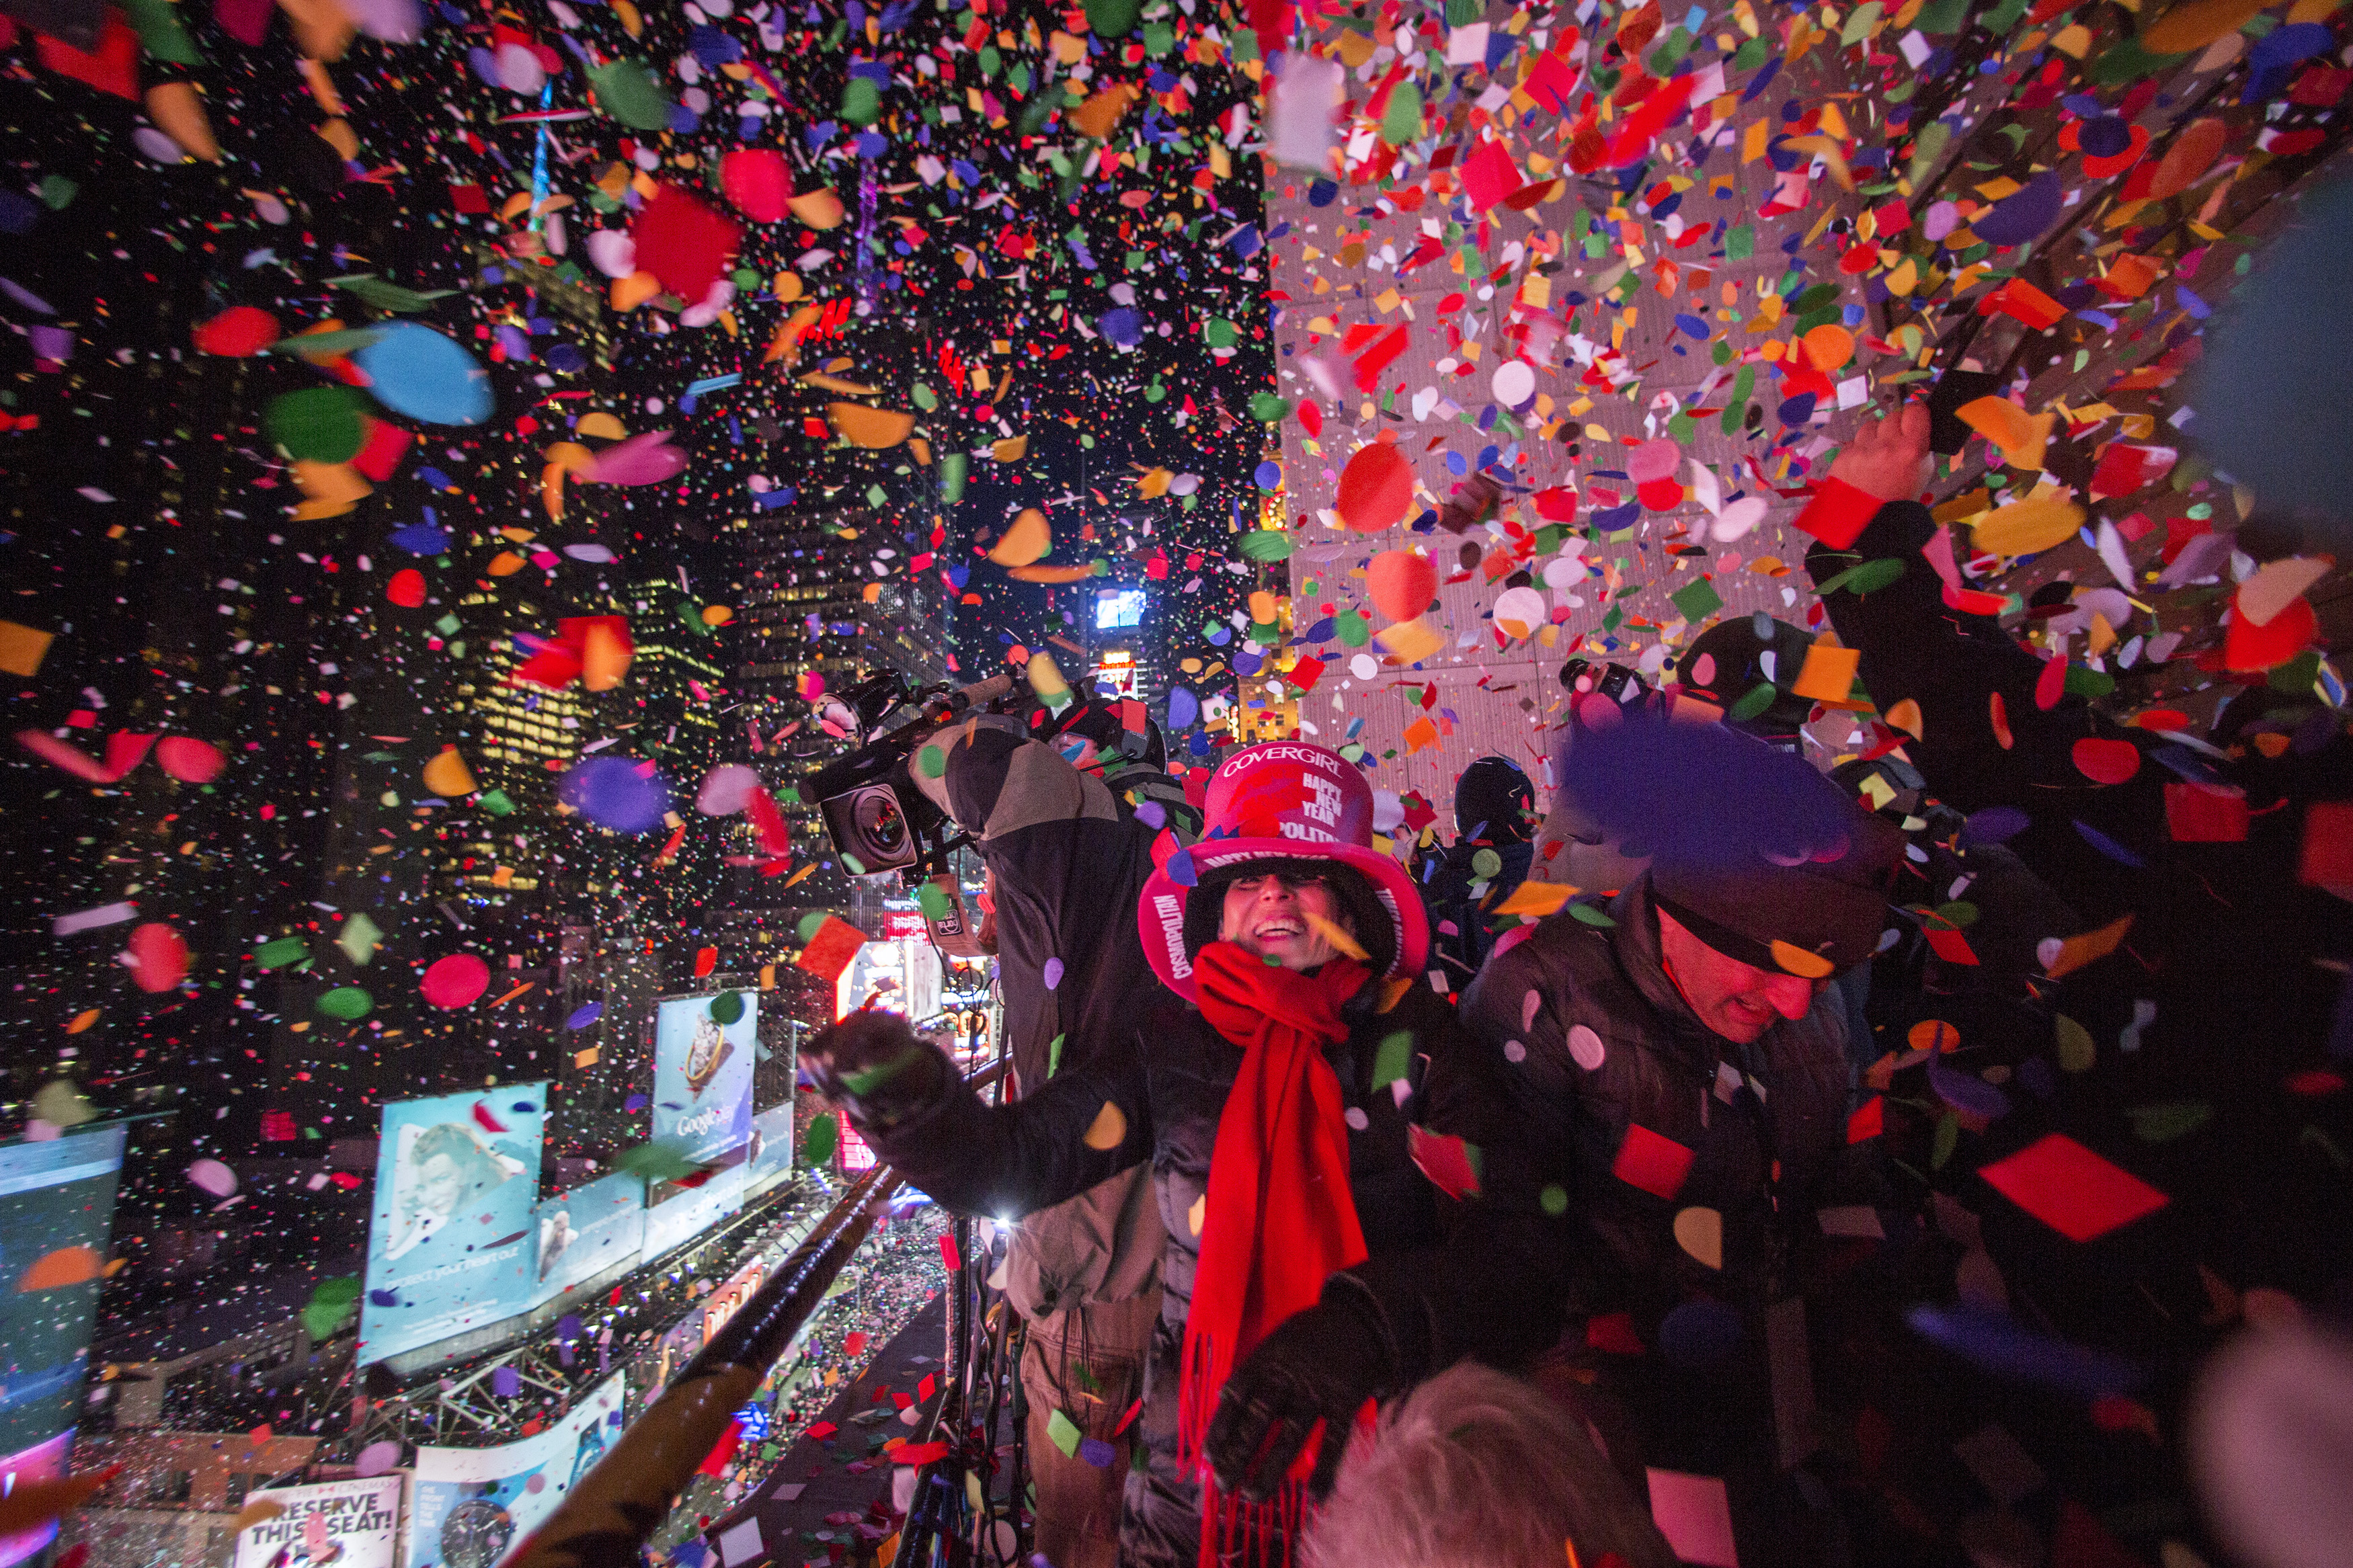 Revellers toss confetti over Times Square from a hotel after the clock struck midnight during New Year's Eve celebrations in New York